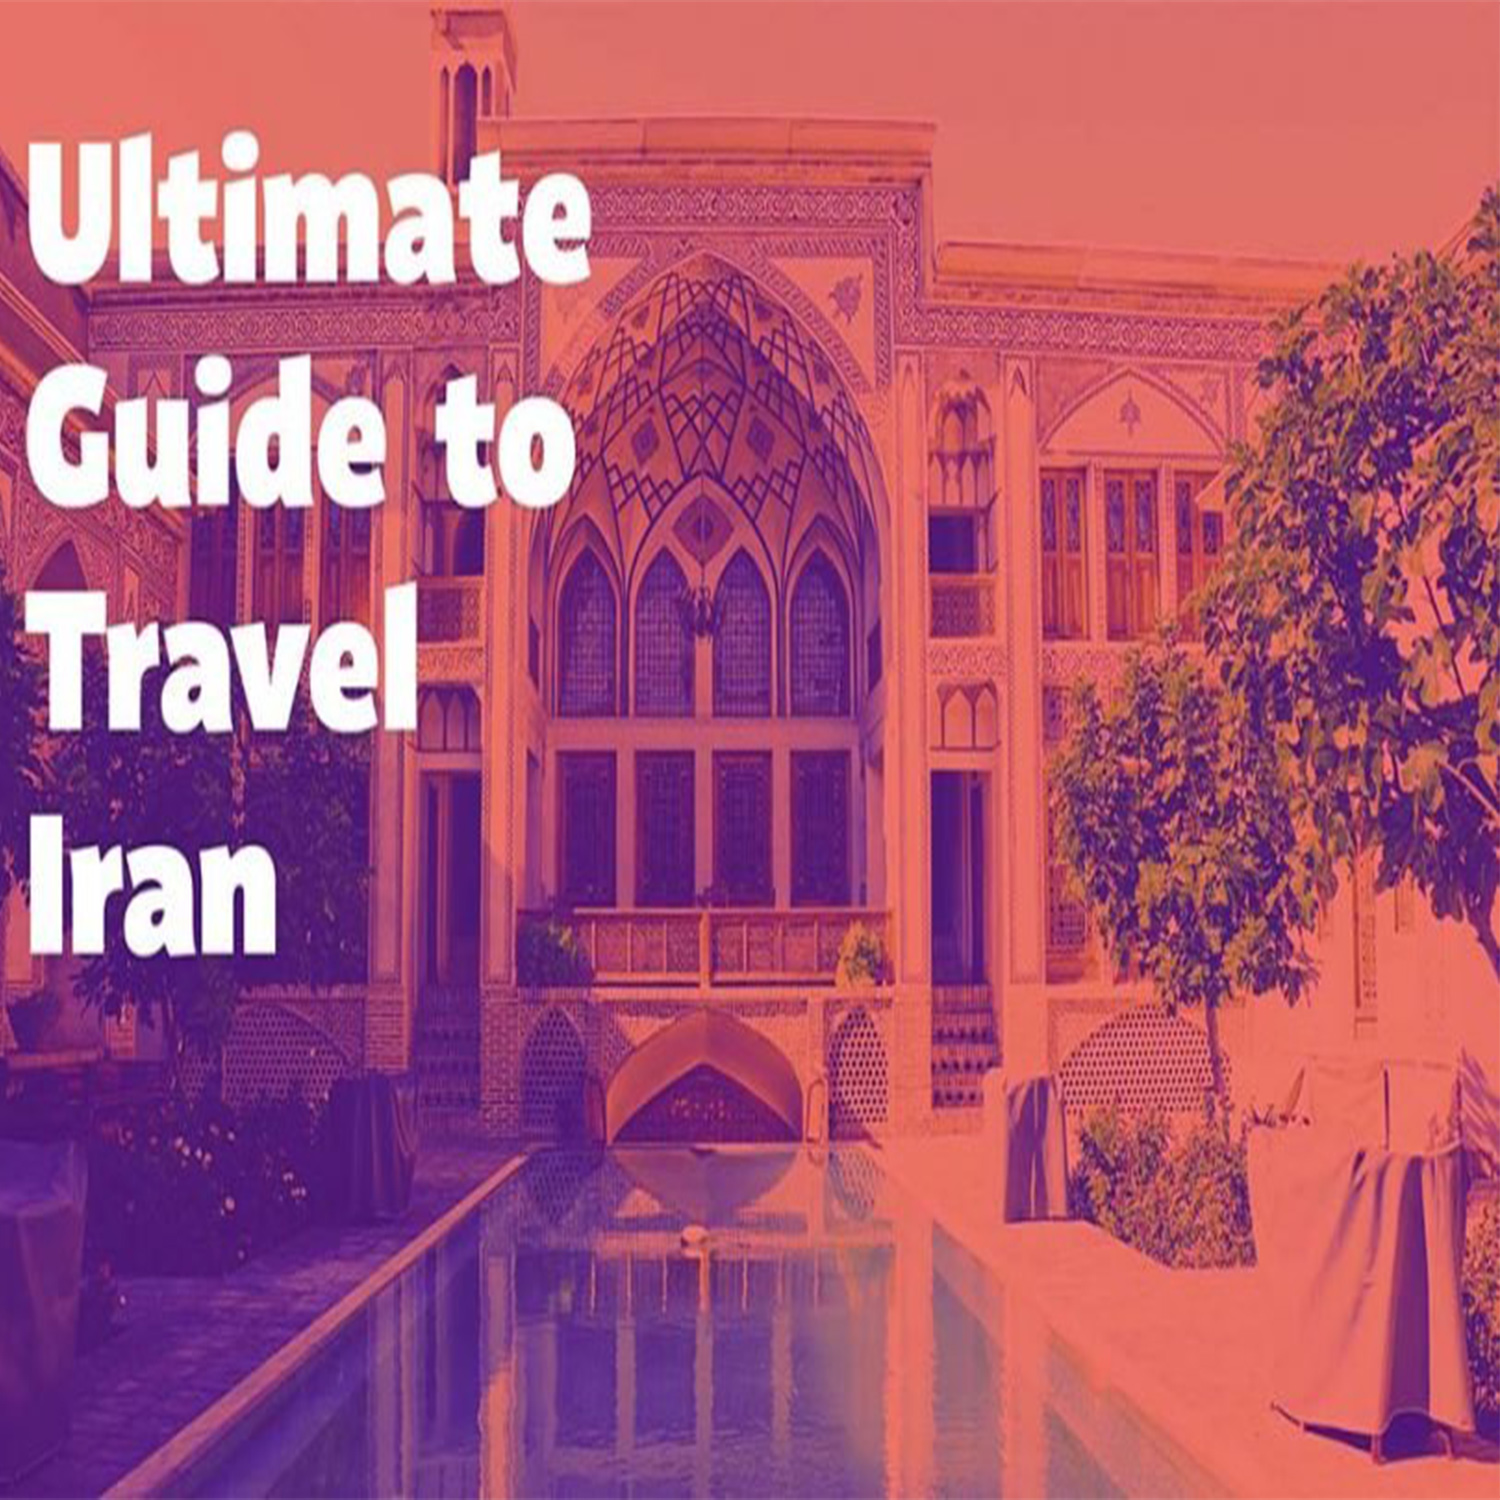 About Iran And Travel To Iran And What You Need Before Traveling To Iran